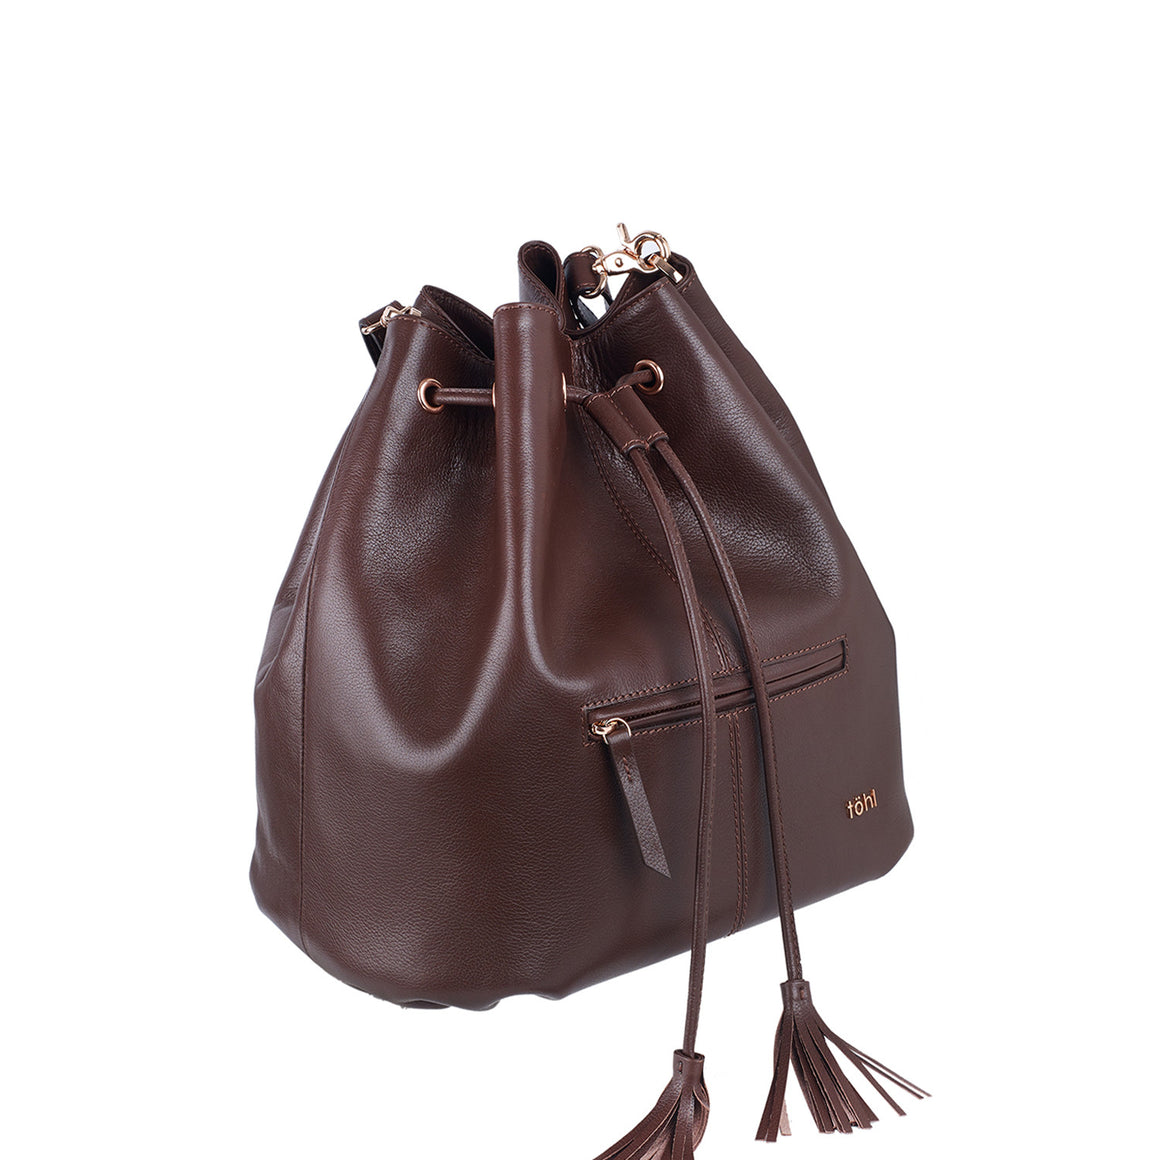 BP 0002 - TOHL MONTAUK WOMEN'S DRAWCORD BUCKET BAG - CHOCO